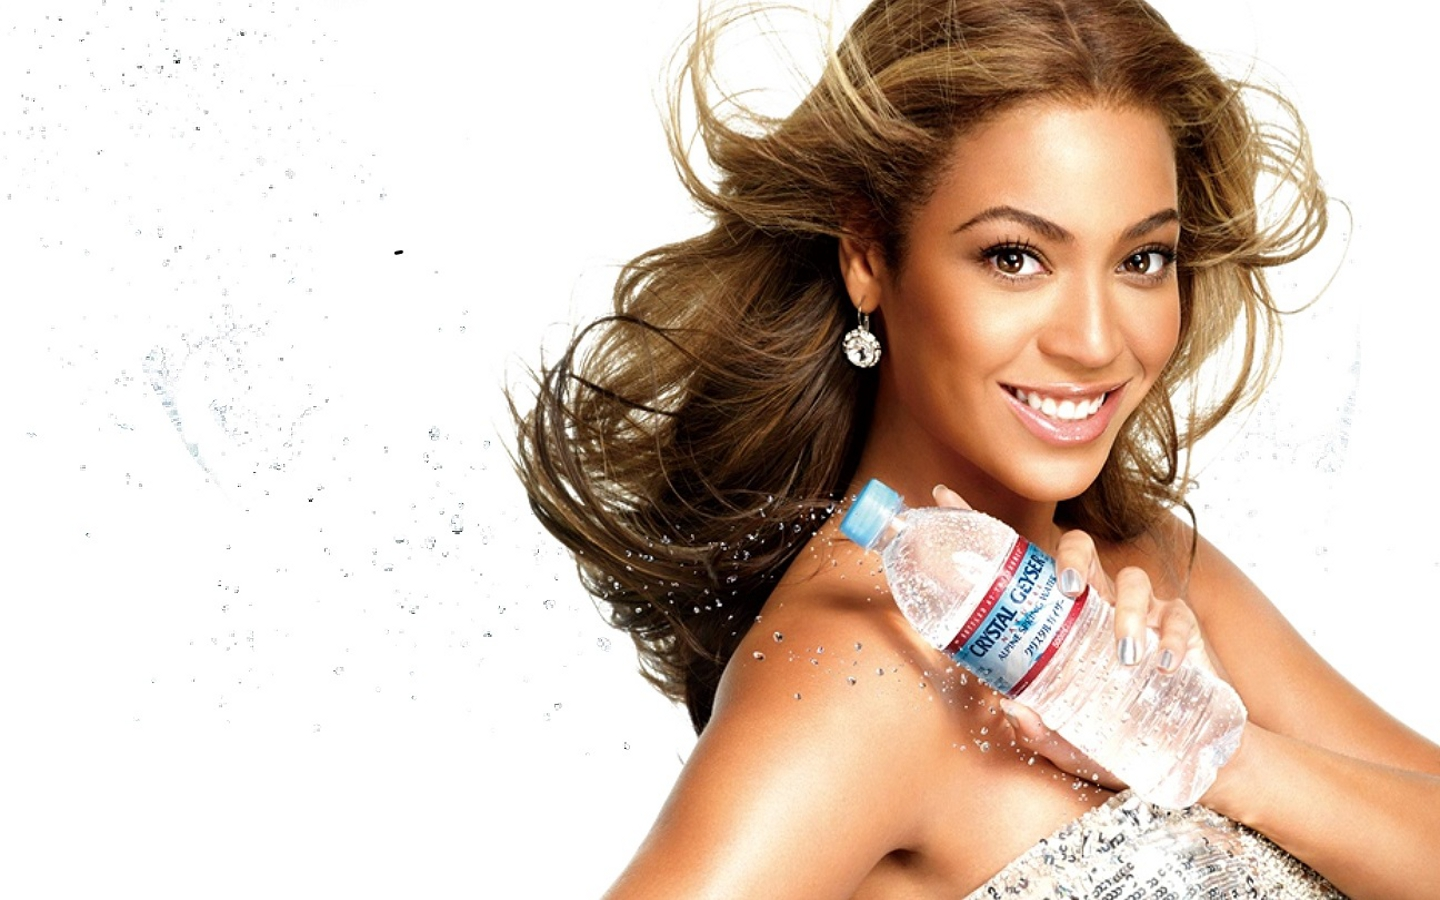 beyonce images beyonce hd wallpaper and background photos